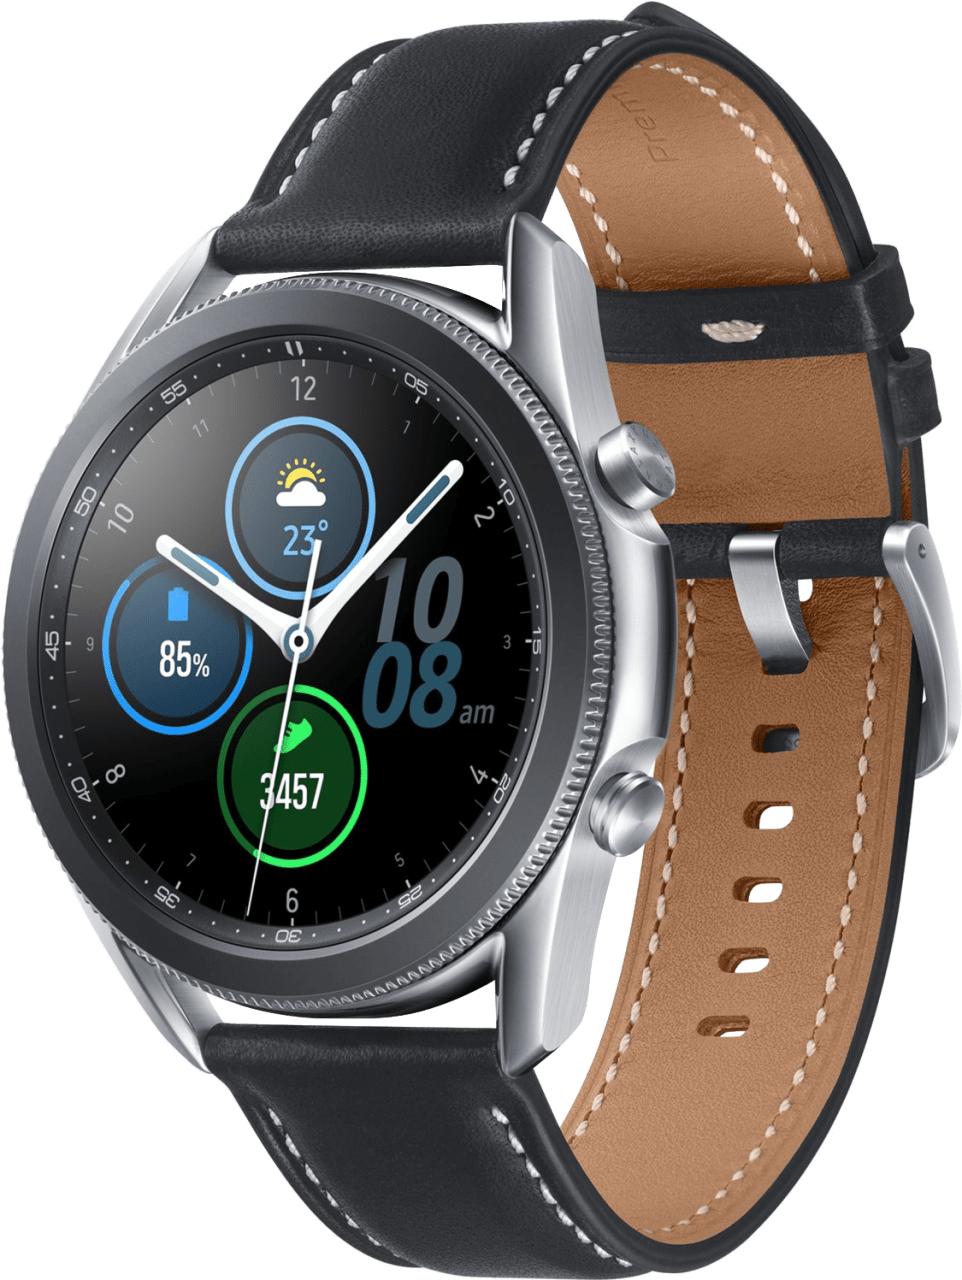 Mystic Zilver Samsung Galaxy Watch3, 45mm Stainless steel case, Real leather band.1